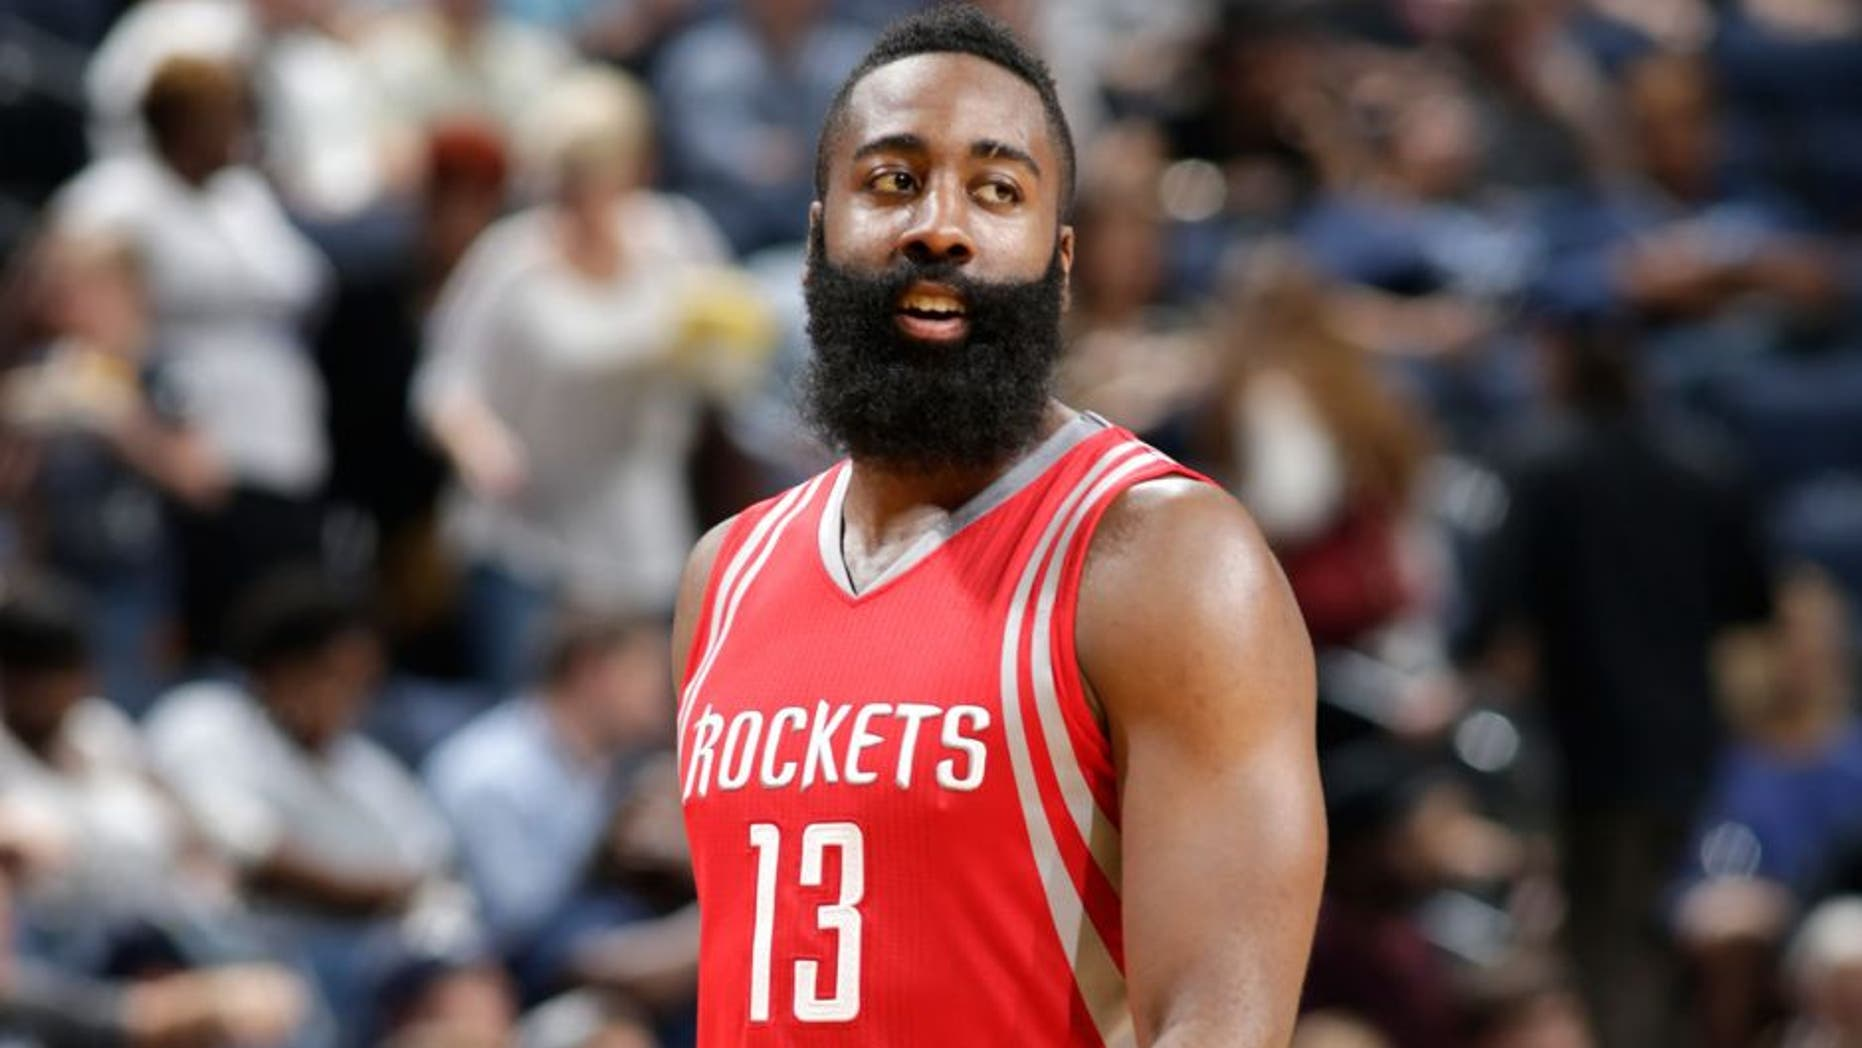 MEMPHIS, TN - OCTOBER 6: James Harden #13 of the Houston Rockets looks on against the Memphis Grizzlies during a preseason game on October 6, 2015 at FedExForum in Memphis, Tennessee. NOTE TO USER: User expressly acknowledges and agrees that, by downloading and or using this photograph, User is consenting to the terms and conditions of the Getty Images License Agreement. Mandatory Copyright Notice: Copyright 2015 NBAE (Photo by Jeff Haynes/NBAE via Getty Images)